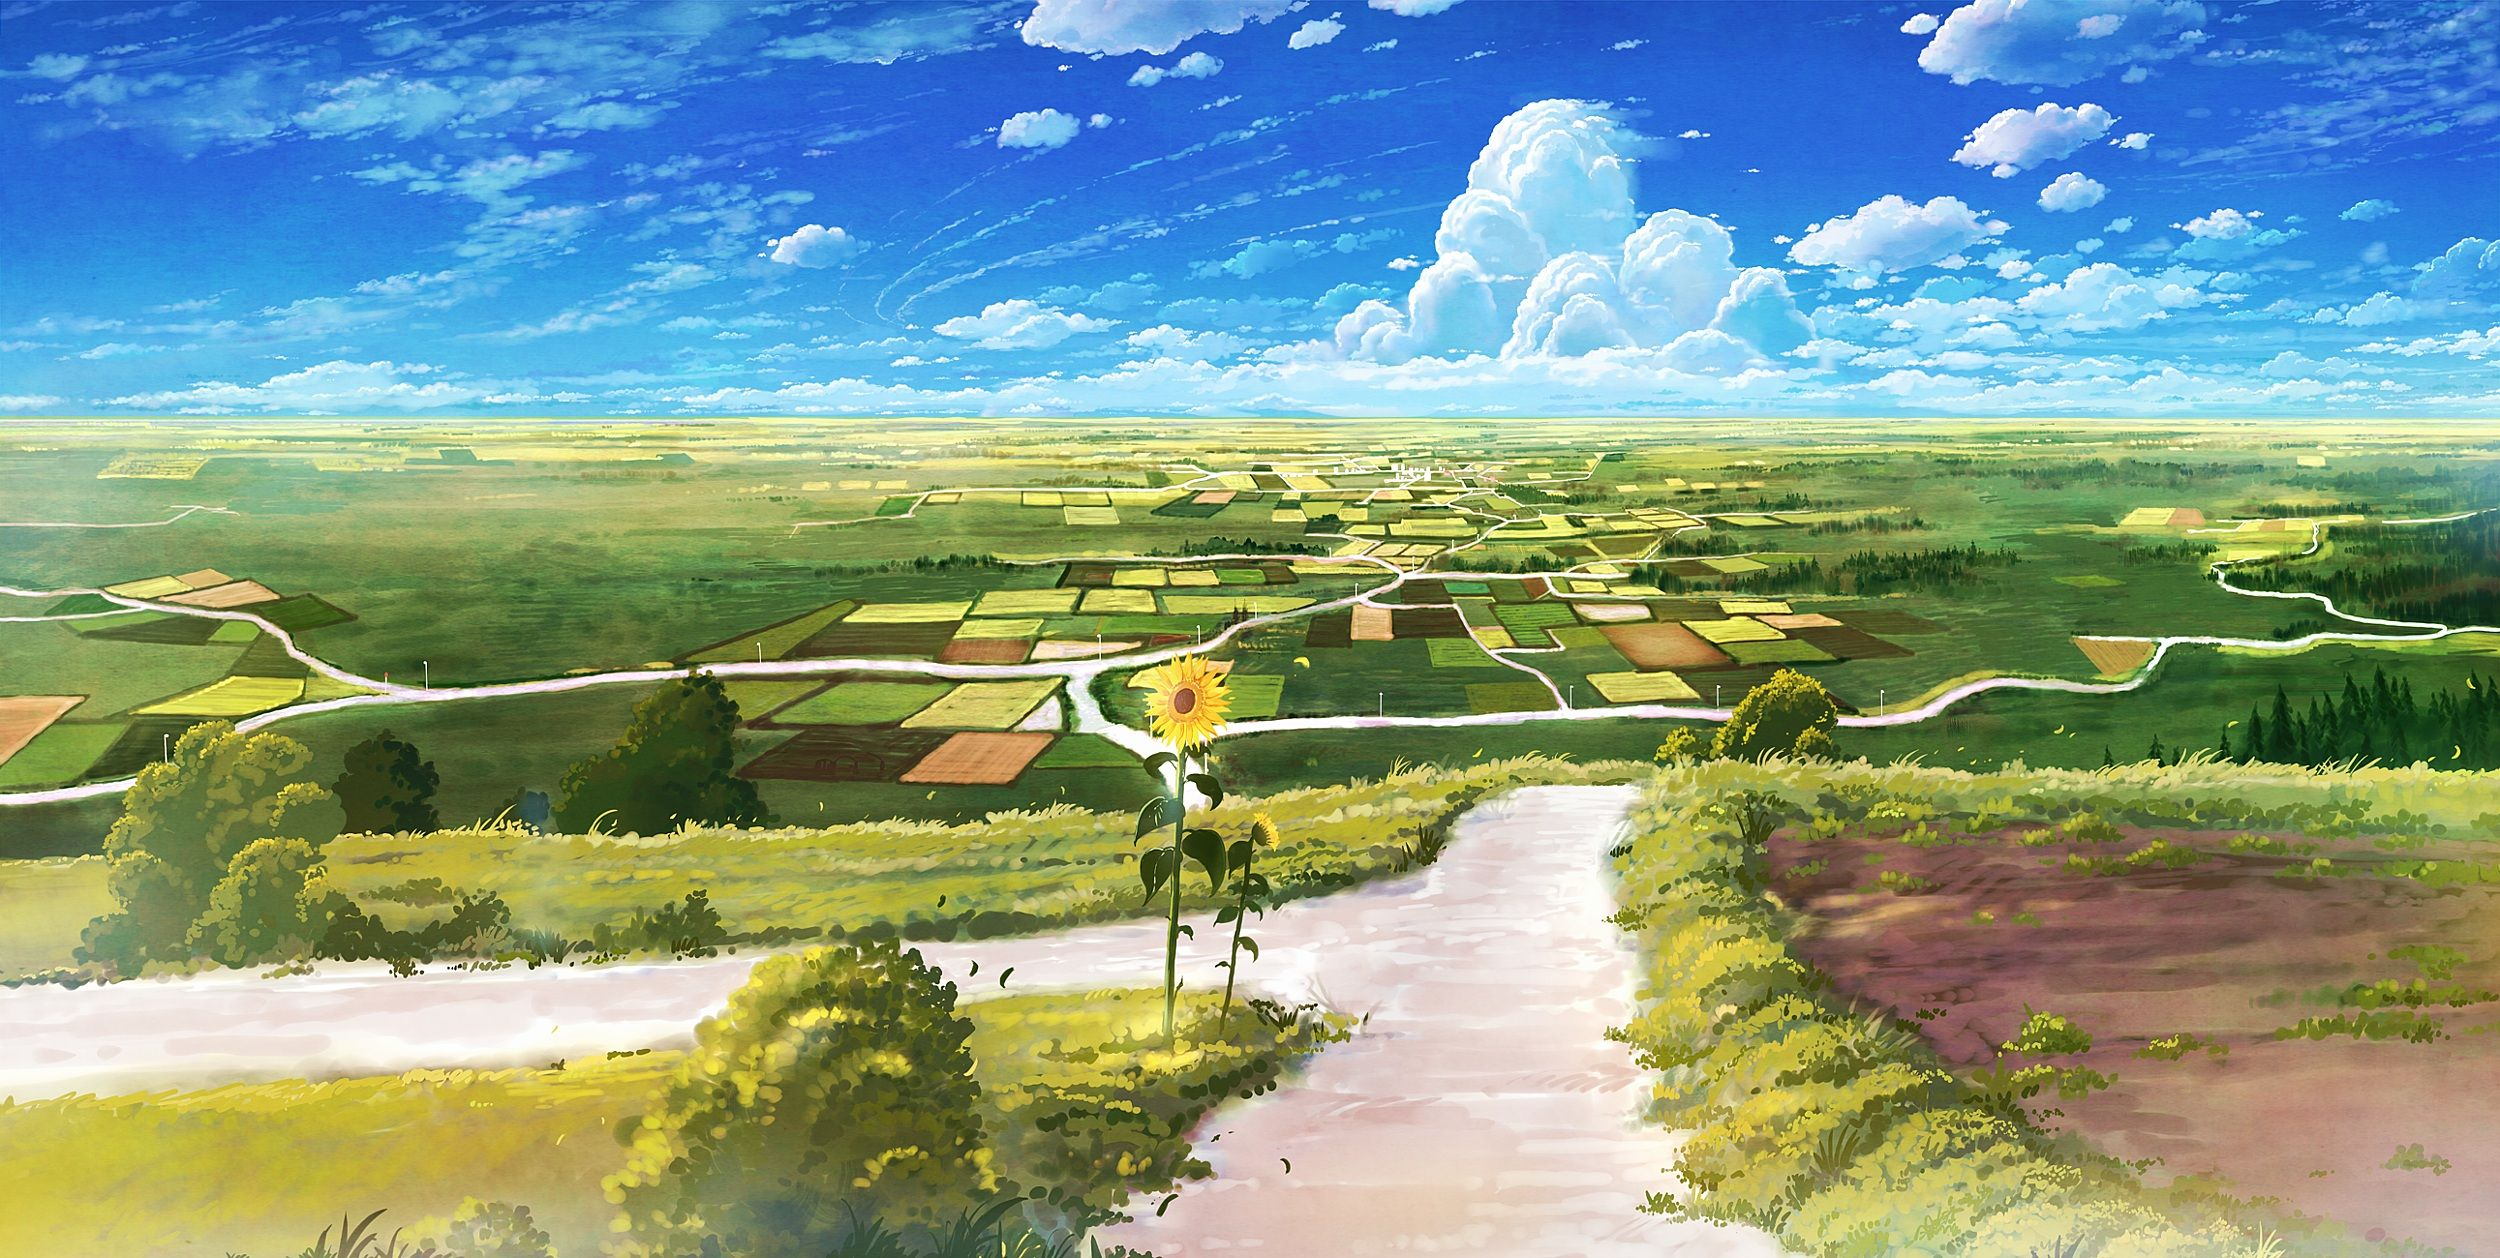 Nature Anime Scenery Background Wallpaper Resources Wallpapers